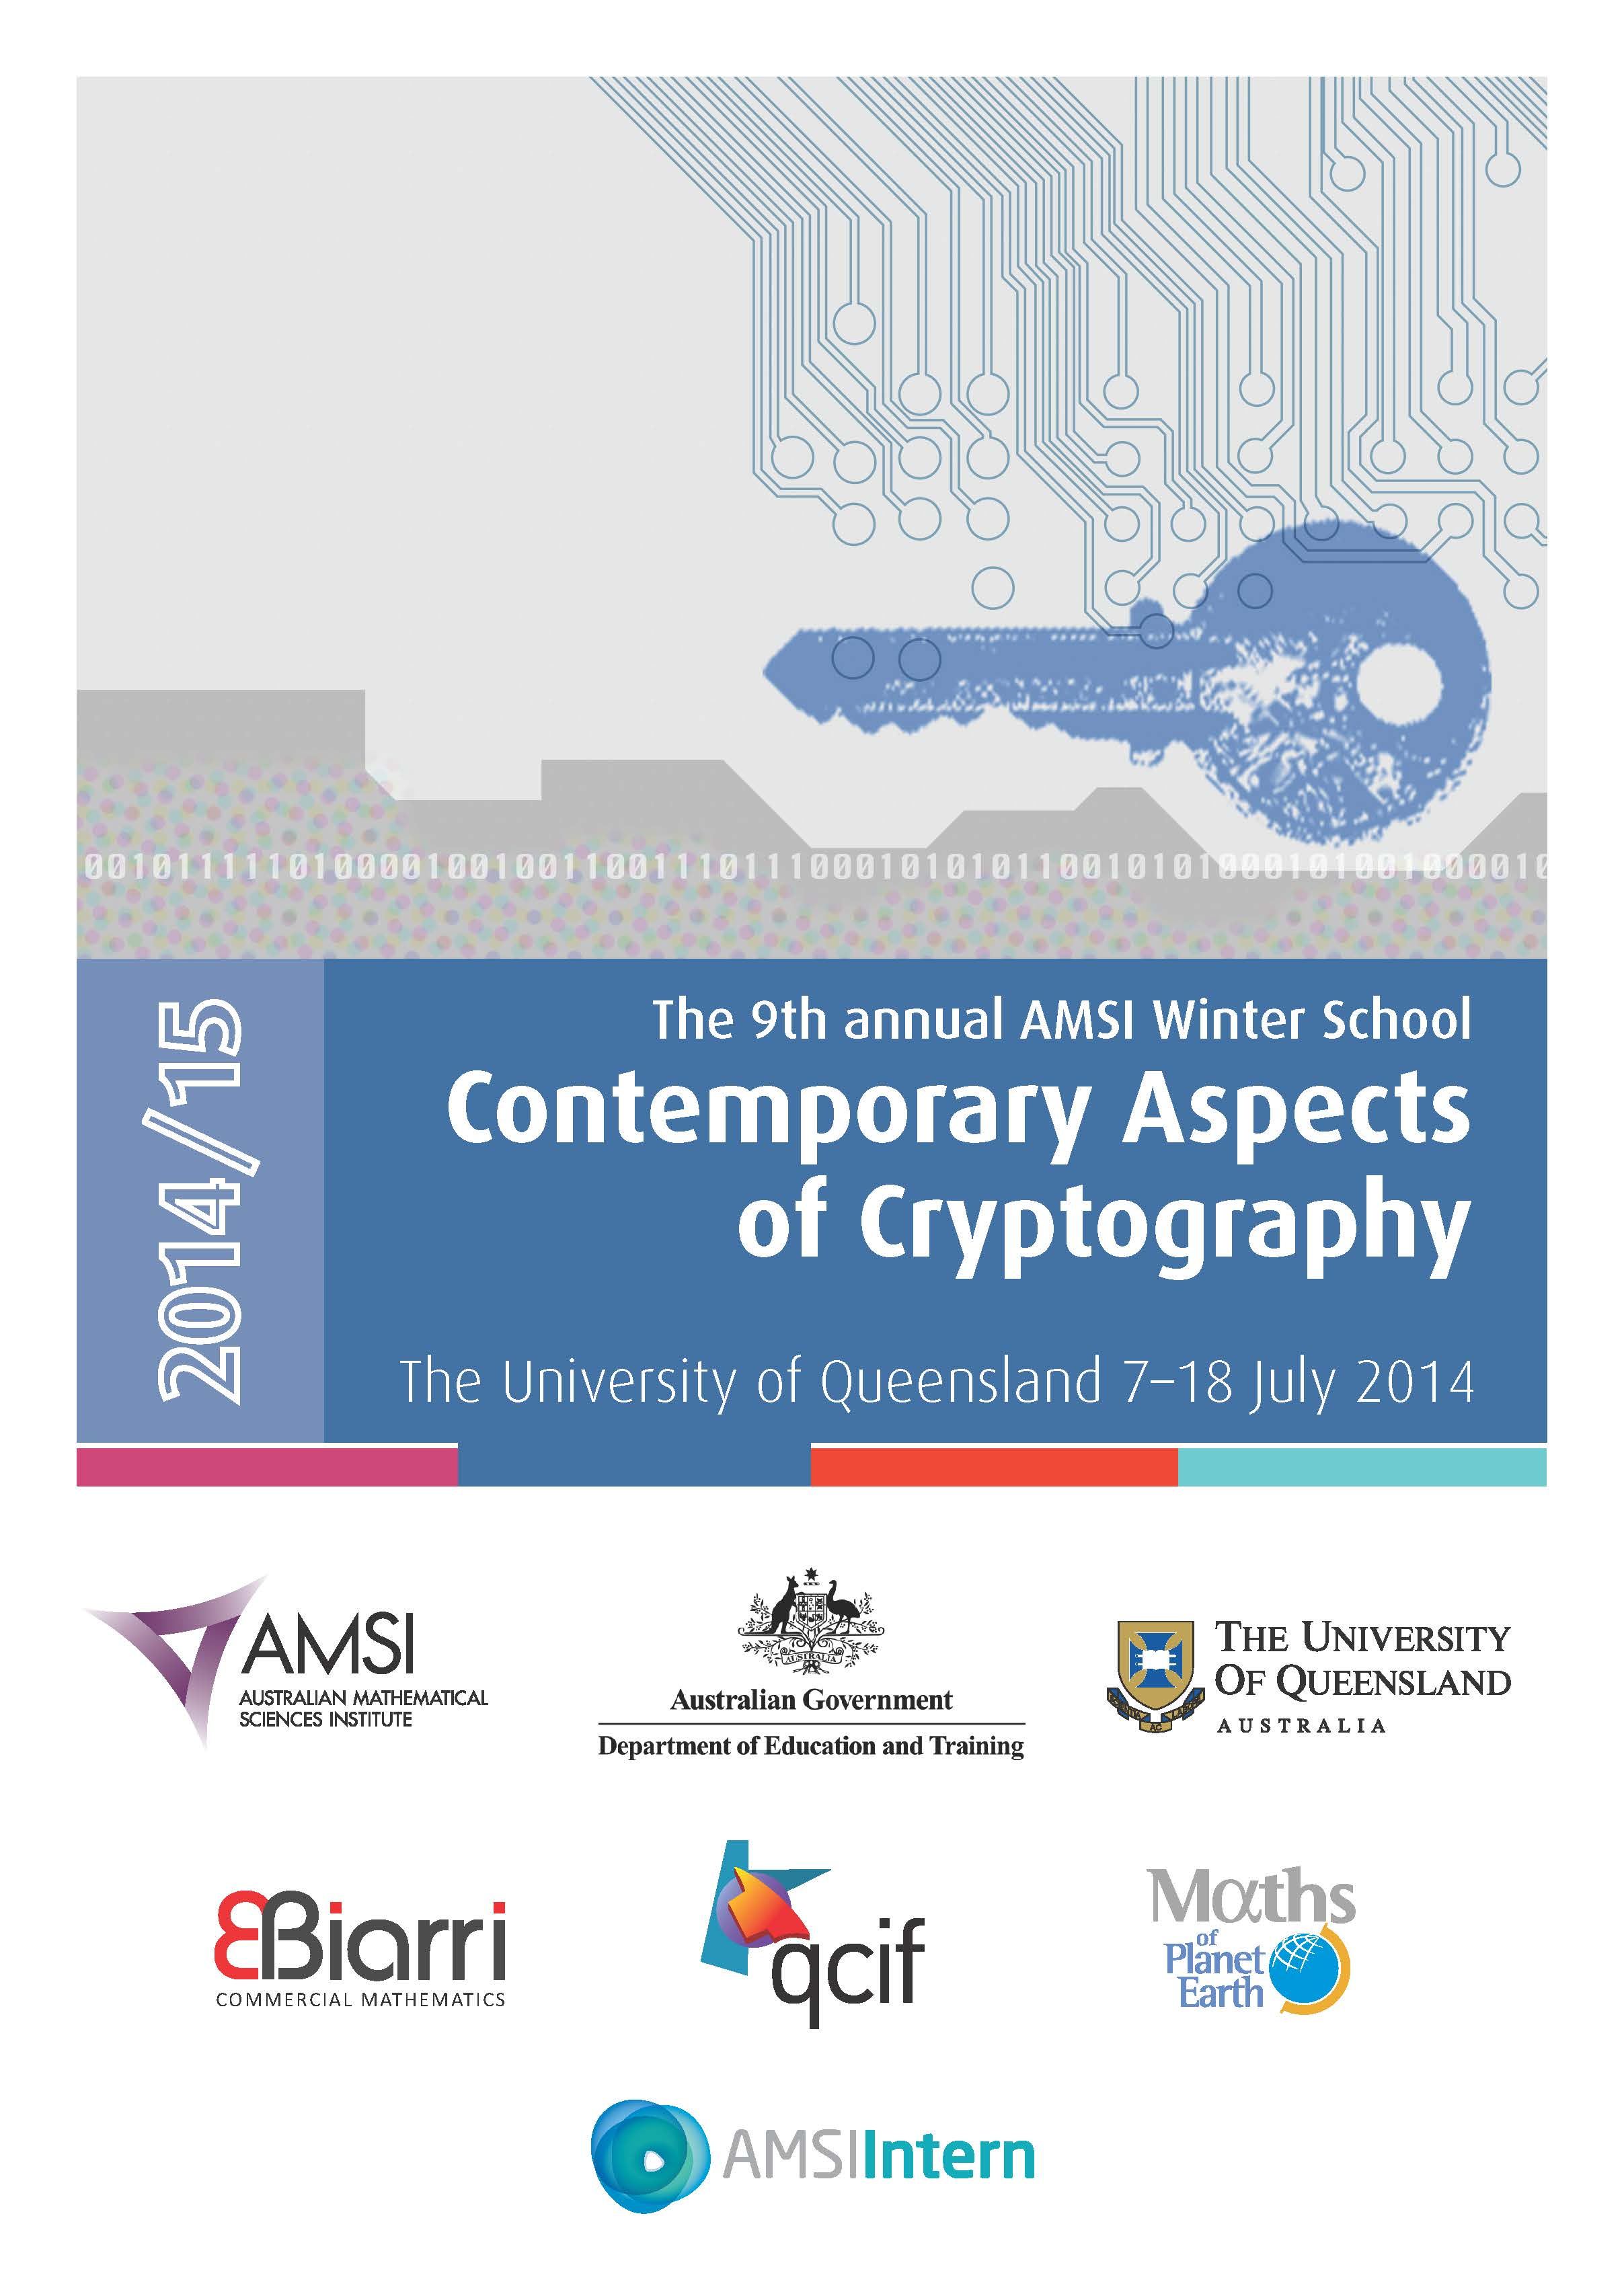 Cryptography Projects and Research Topics